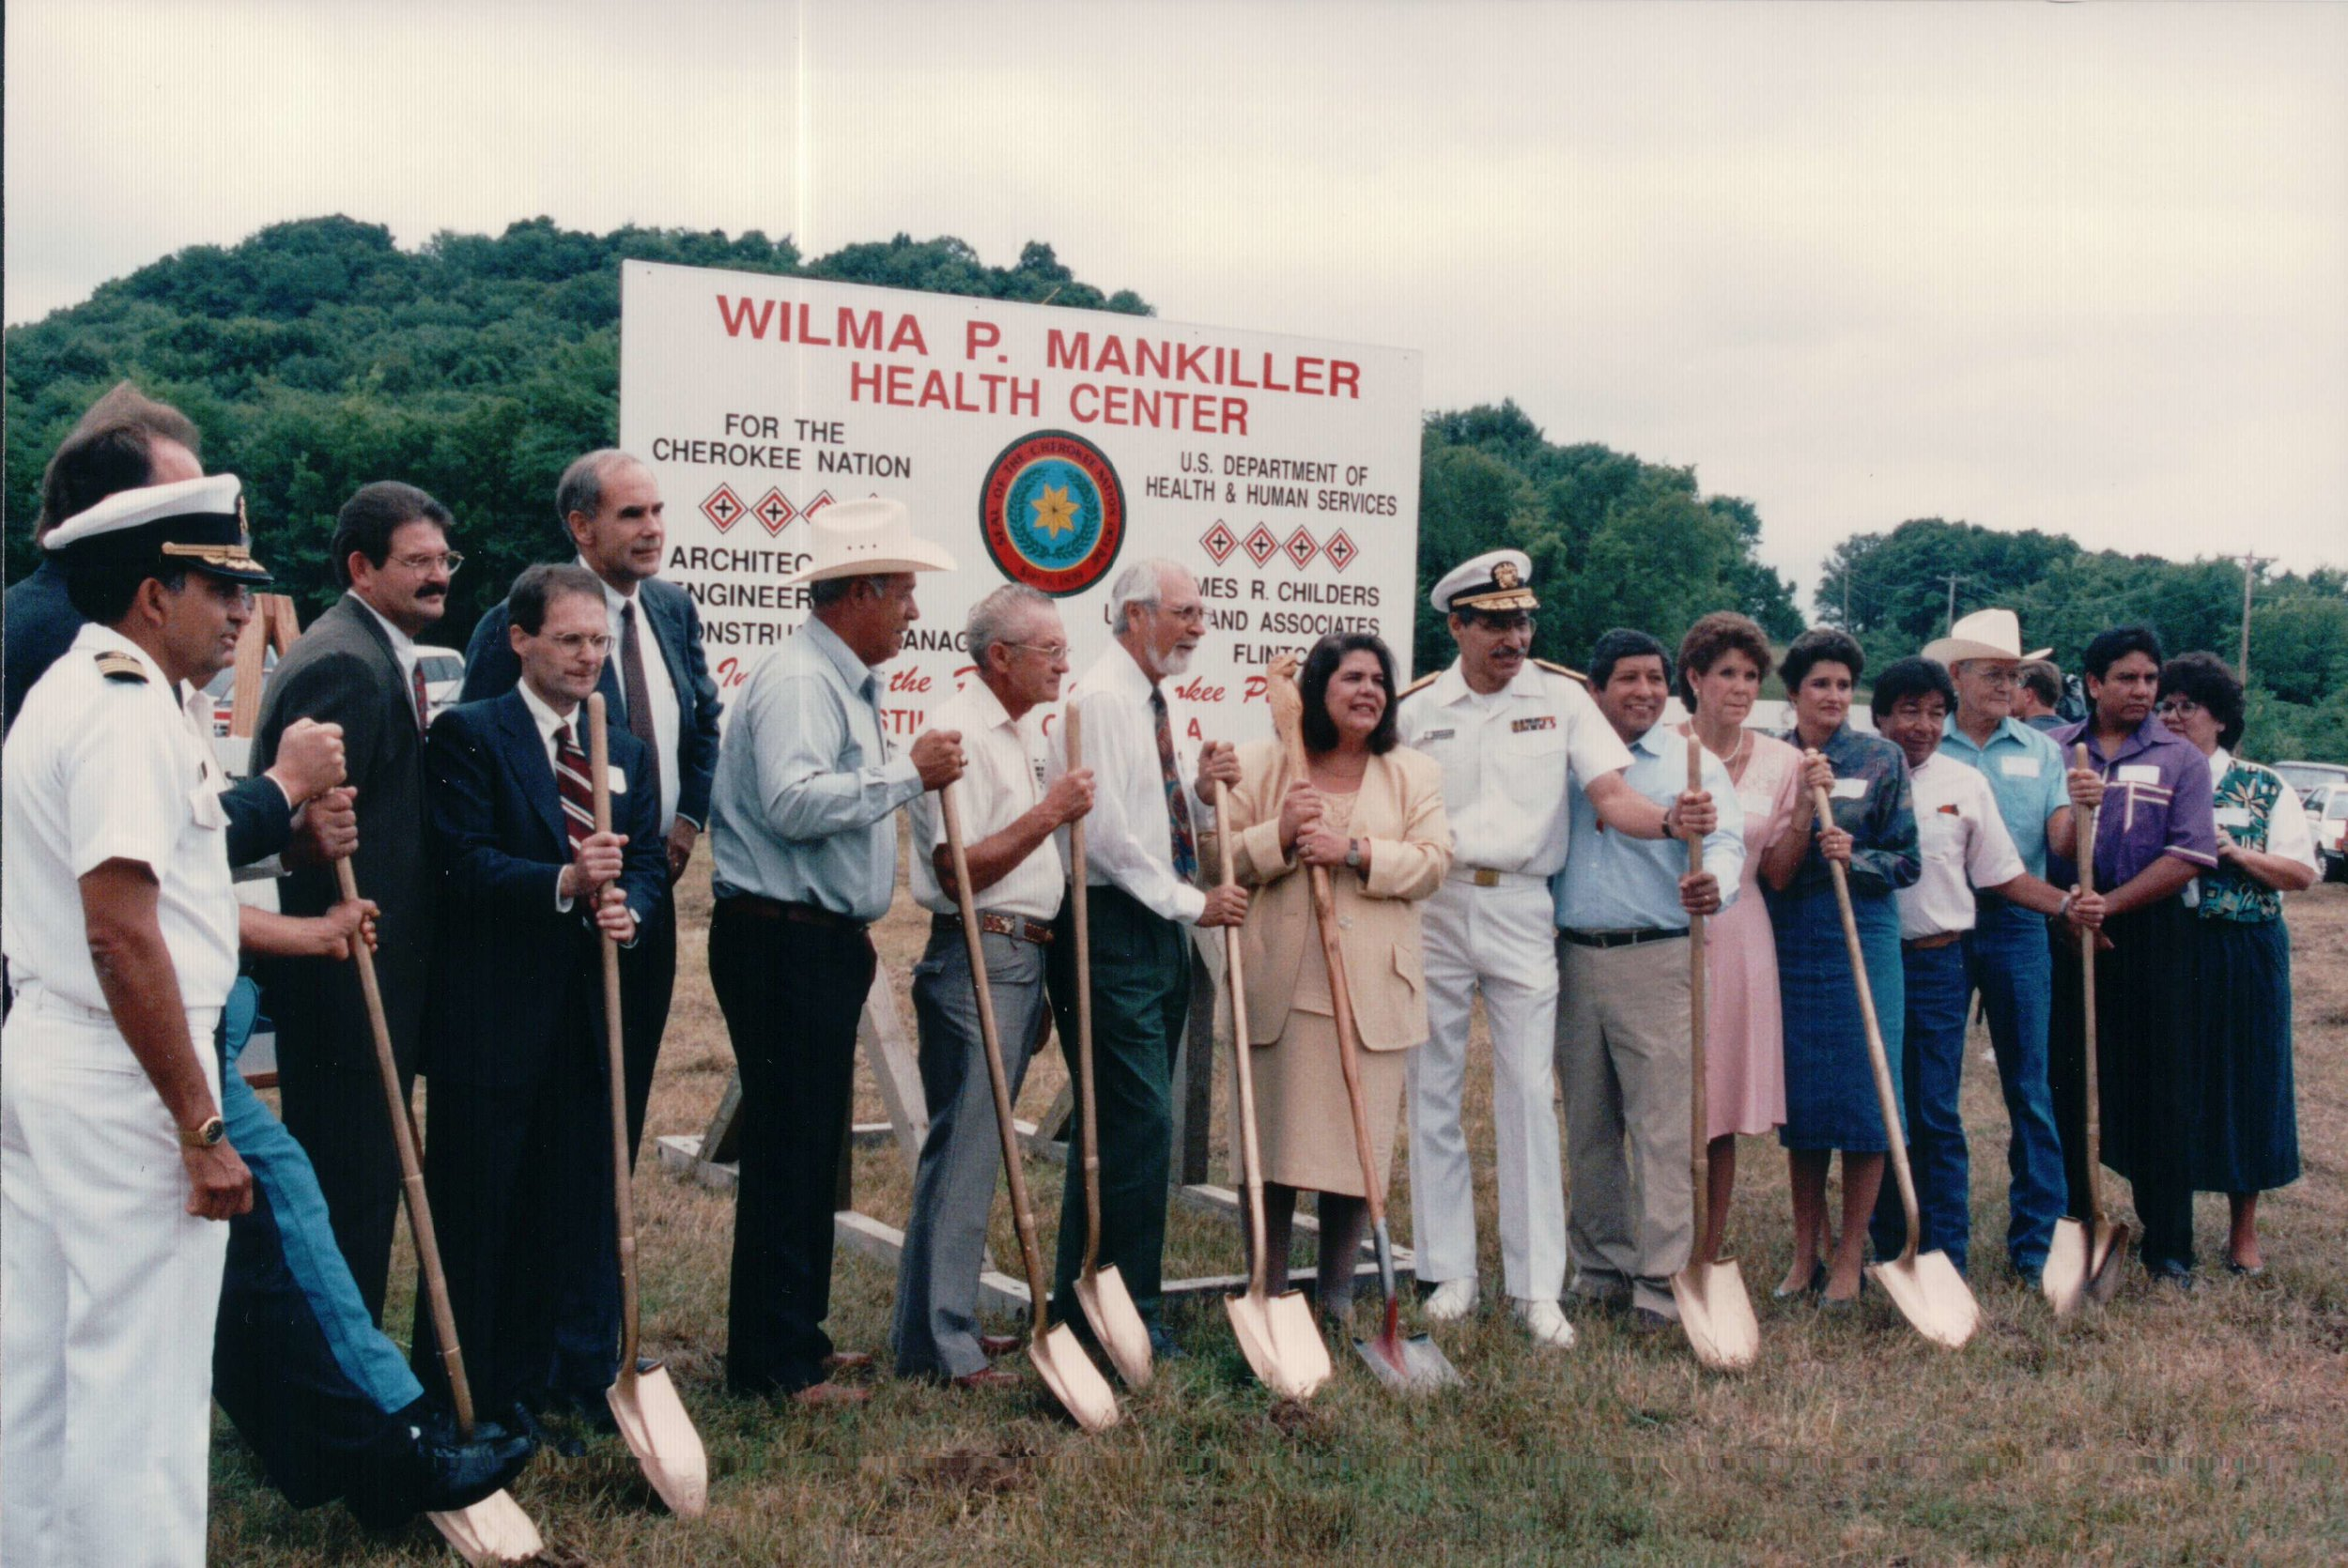 Wilma Mankiller and colleagues hold ceremonial shovels at the goundbreaking of the Wilma P. Mankiller Health Center